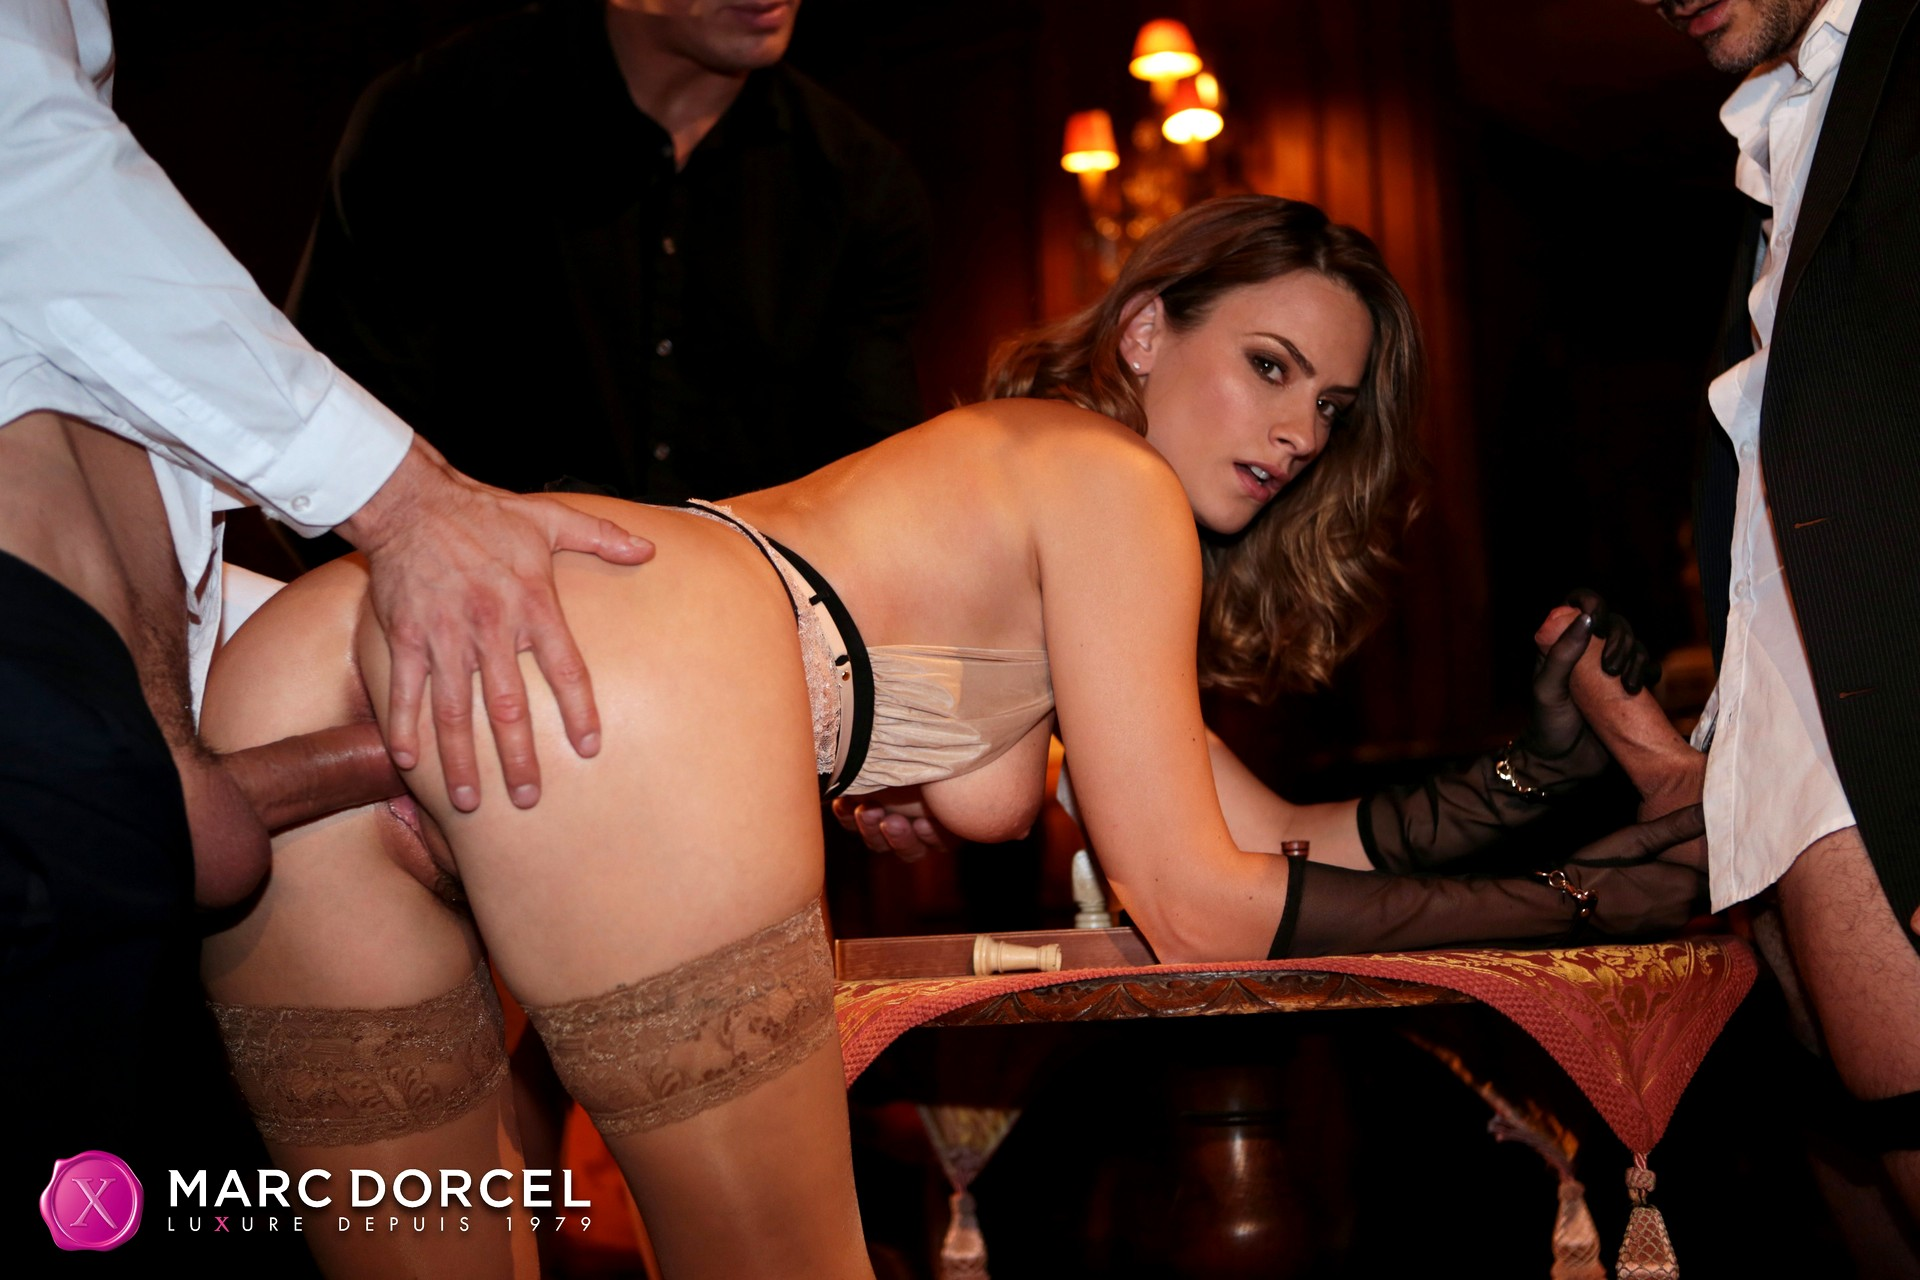 Babe Today Dorcel Club Cayla Lyons Dicked Stable Open Fuck Mobile Porn Pics